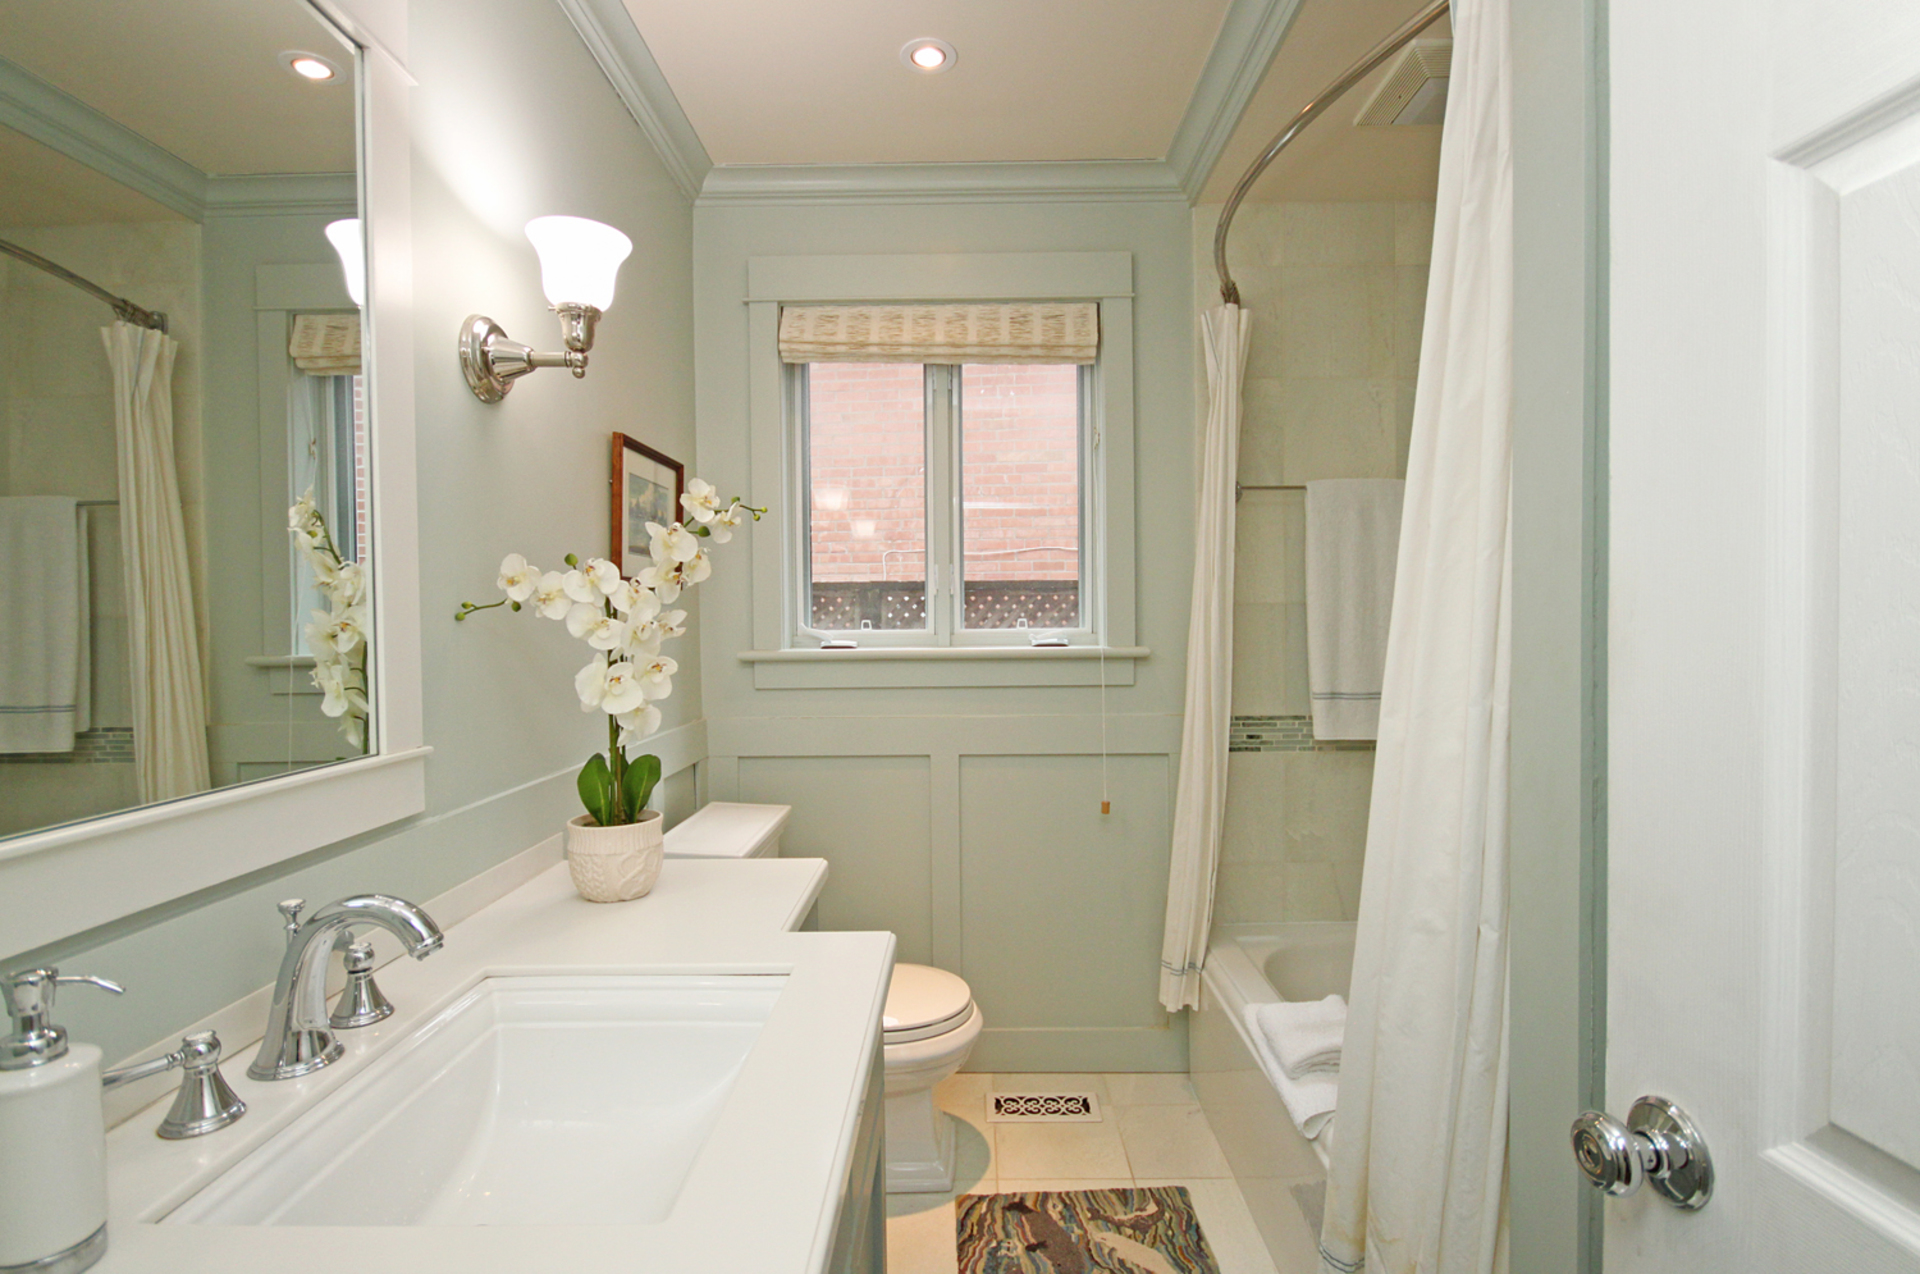 4 Piece Bathroom at 39 Sagebrush Lane, Parkwoods-Donalda, Toronto